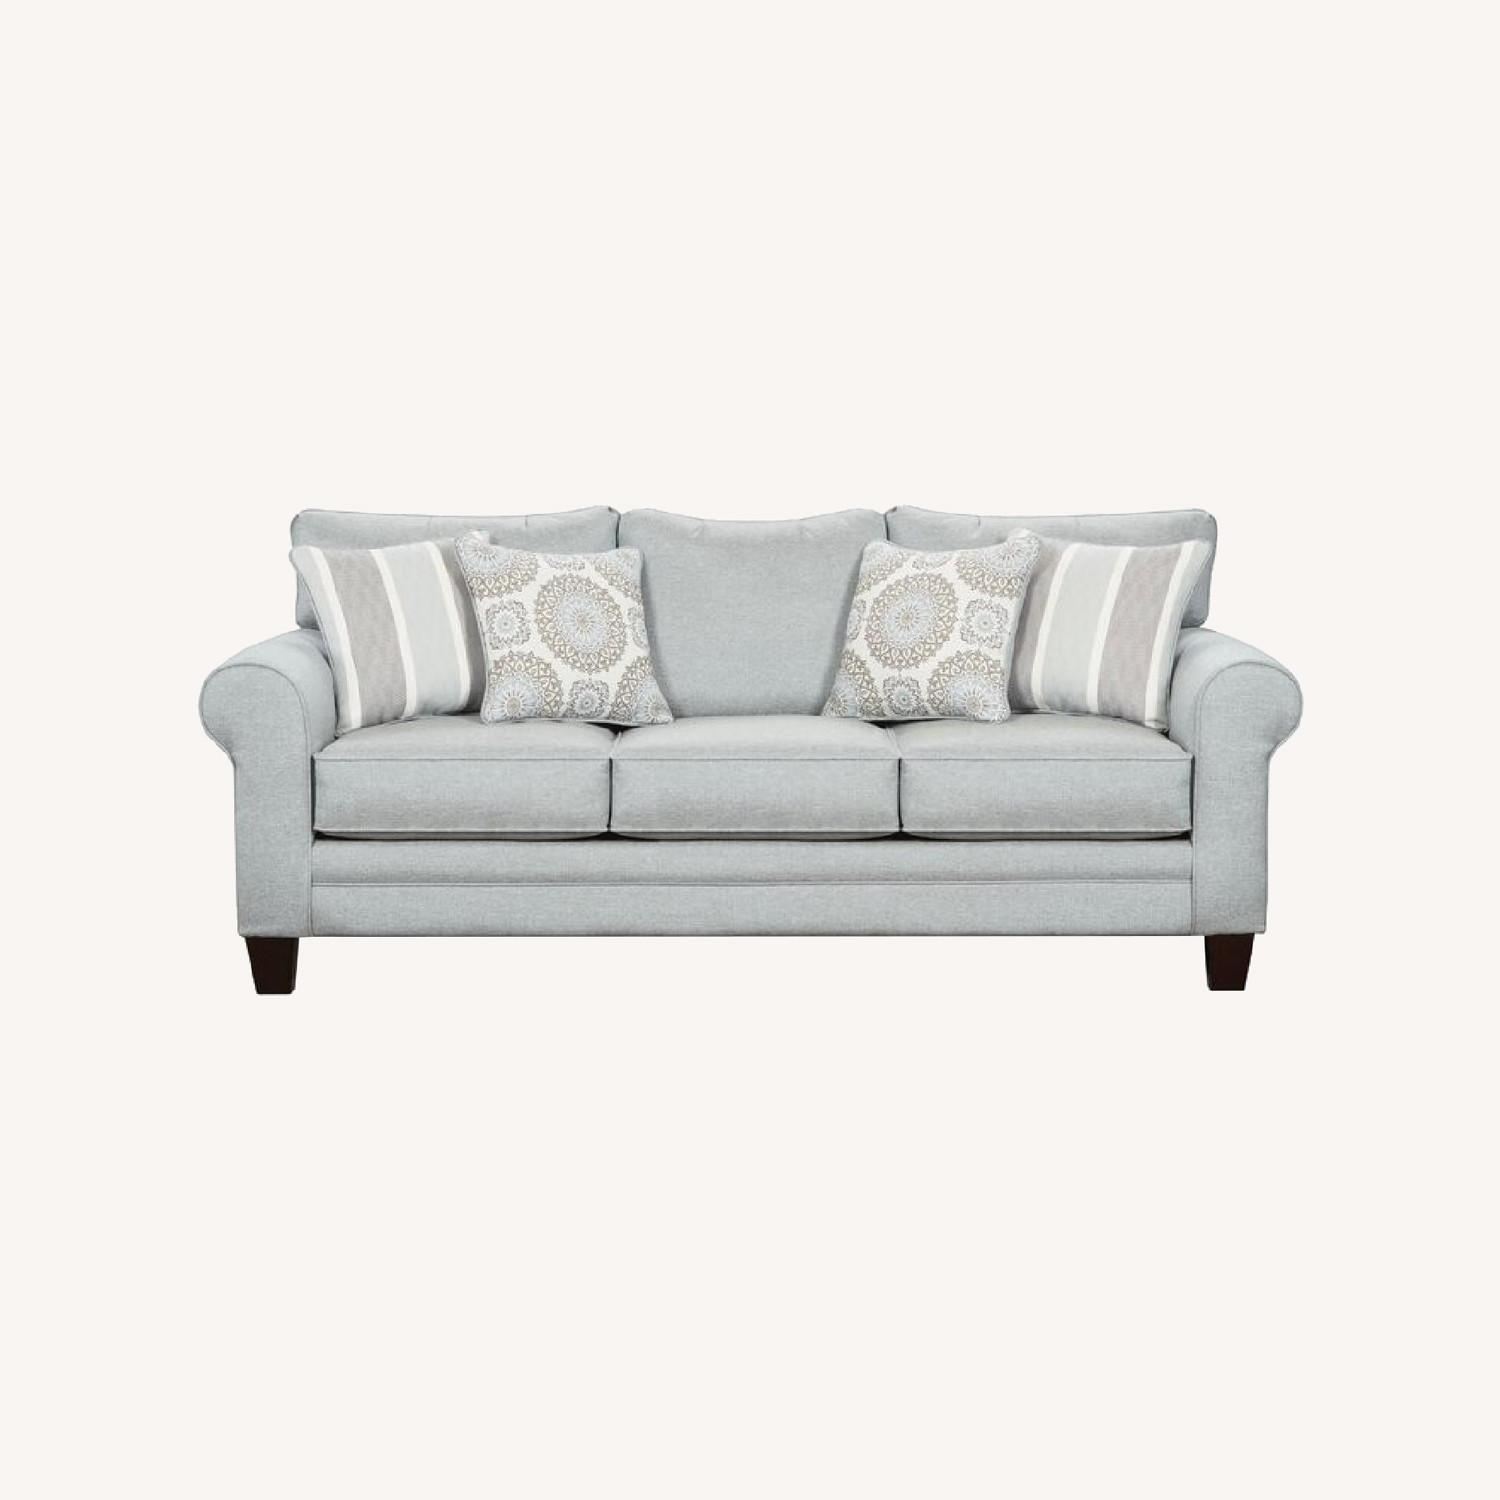 Wayfair Sedgley Rolled Armed Sofa with Reversible Cushion - image-0